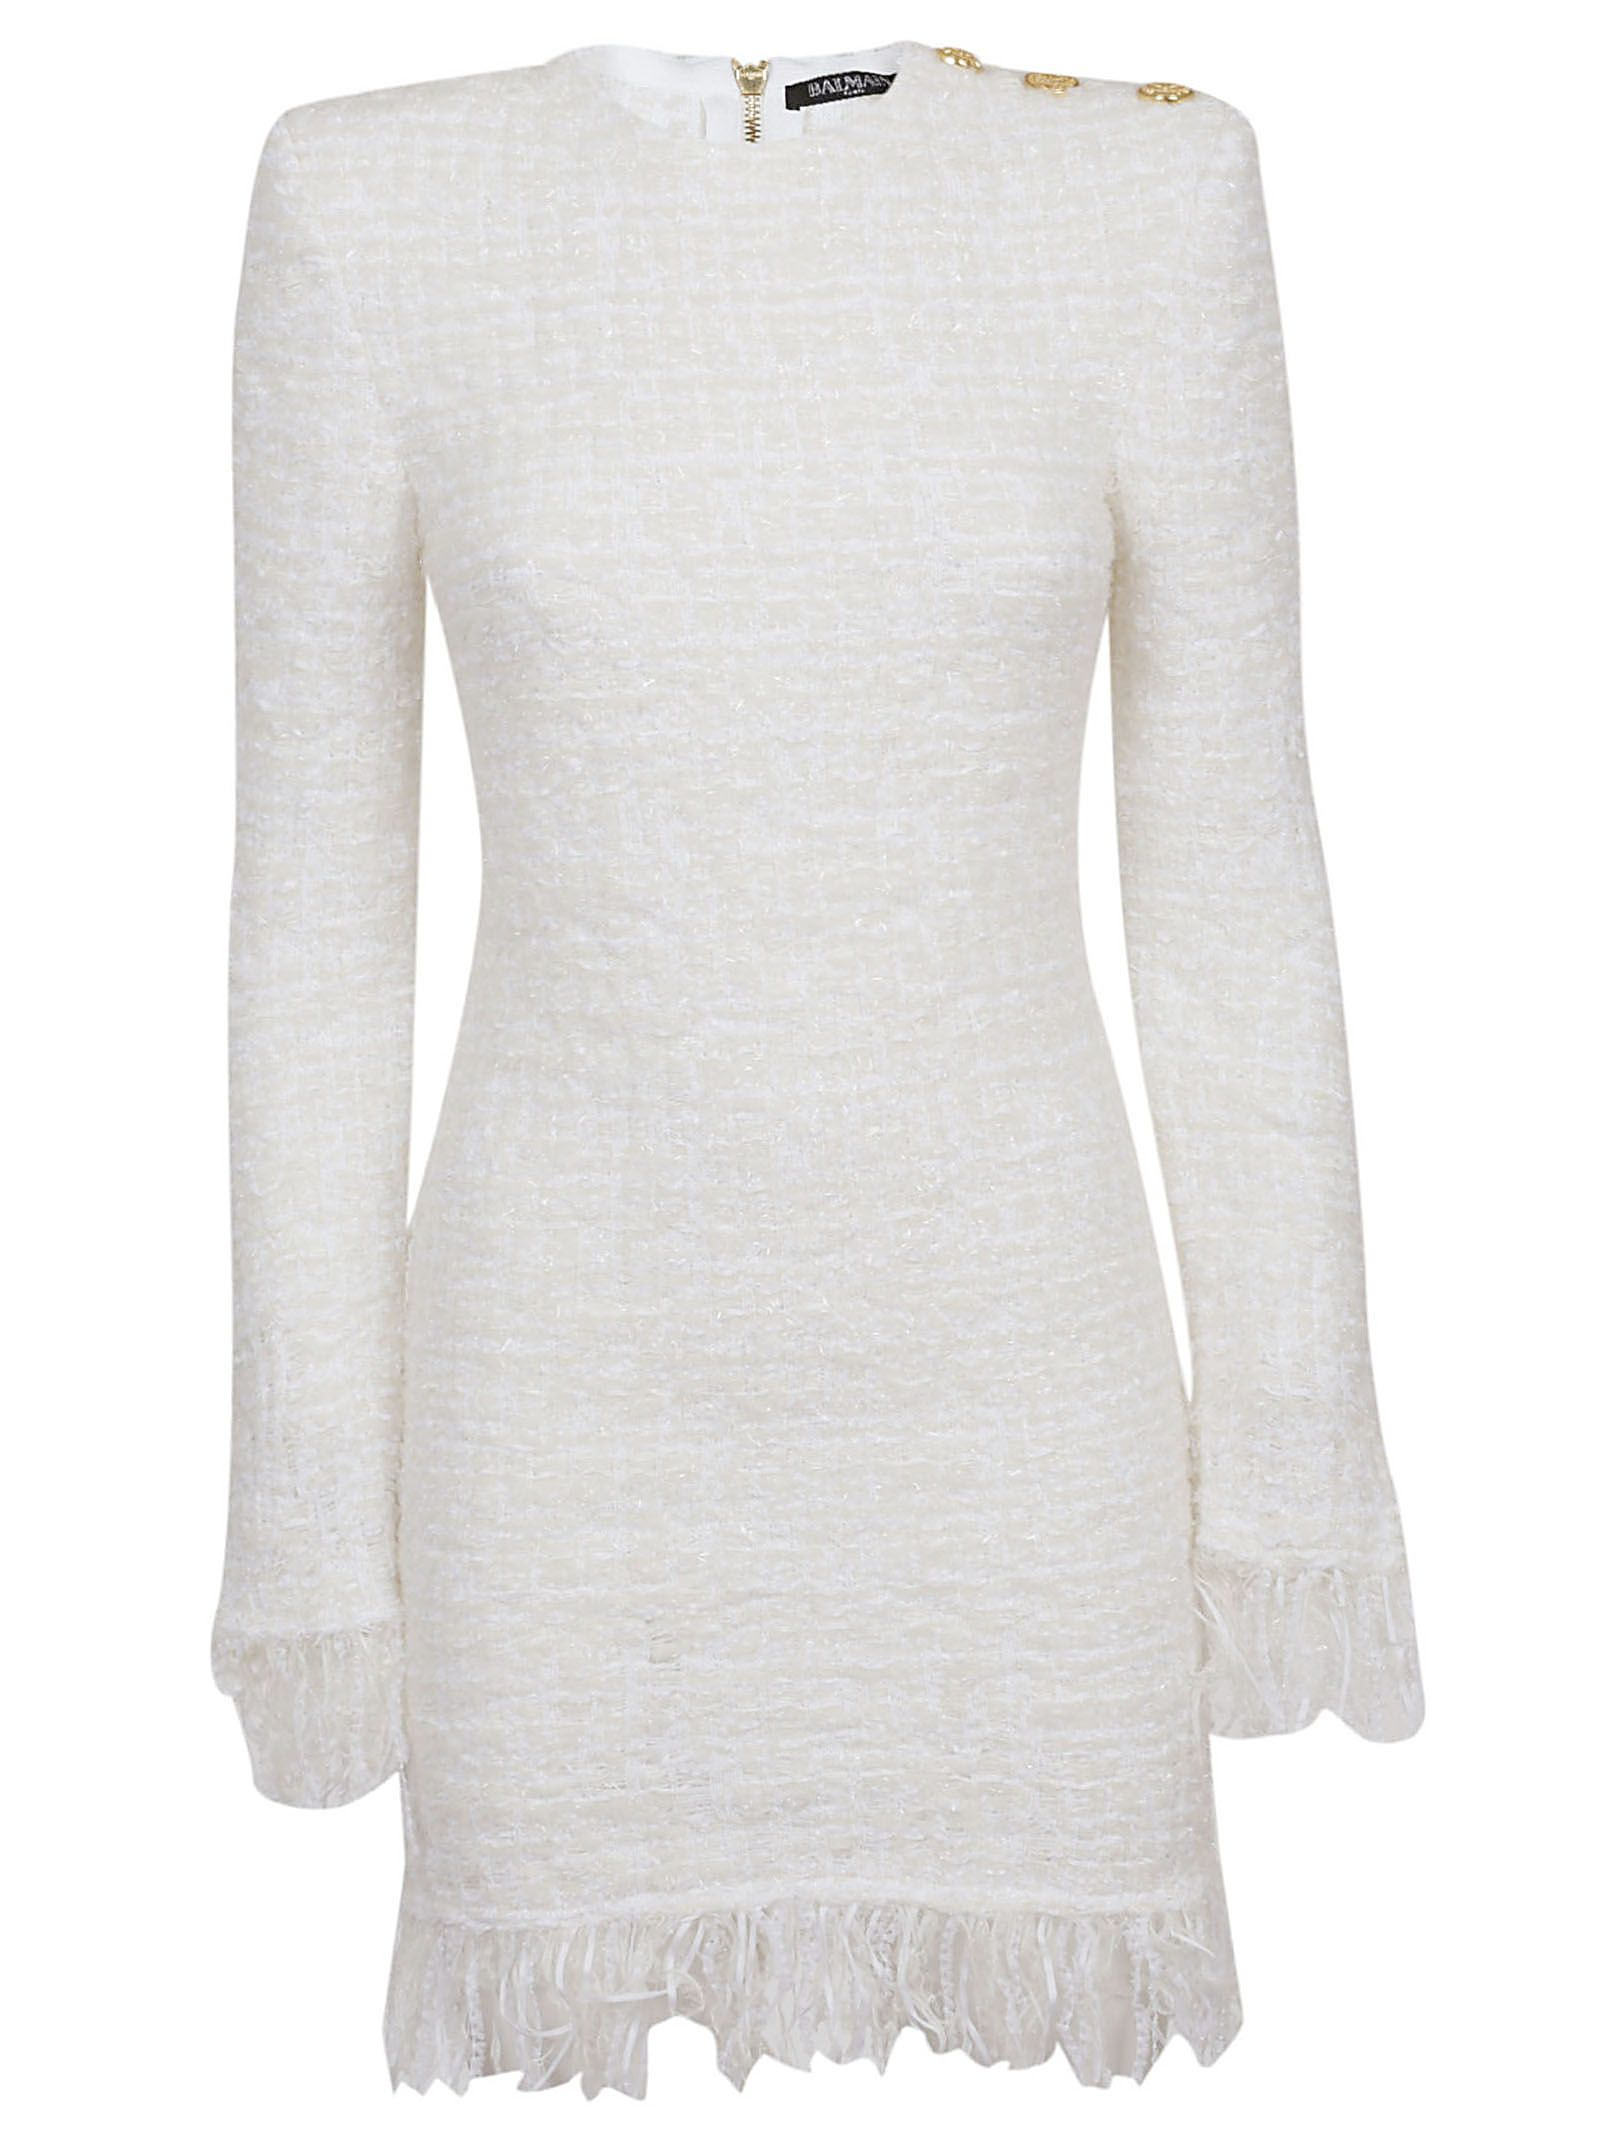 8a34a0babdcecc Balmain Balmain Fringed Tweed Dress - Fa Blanc - 10796097